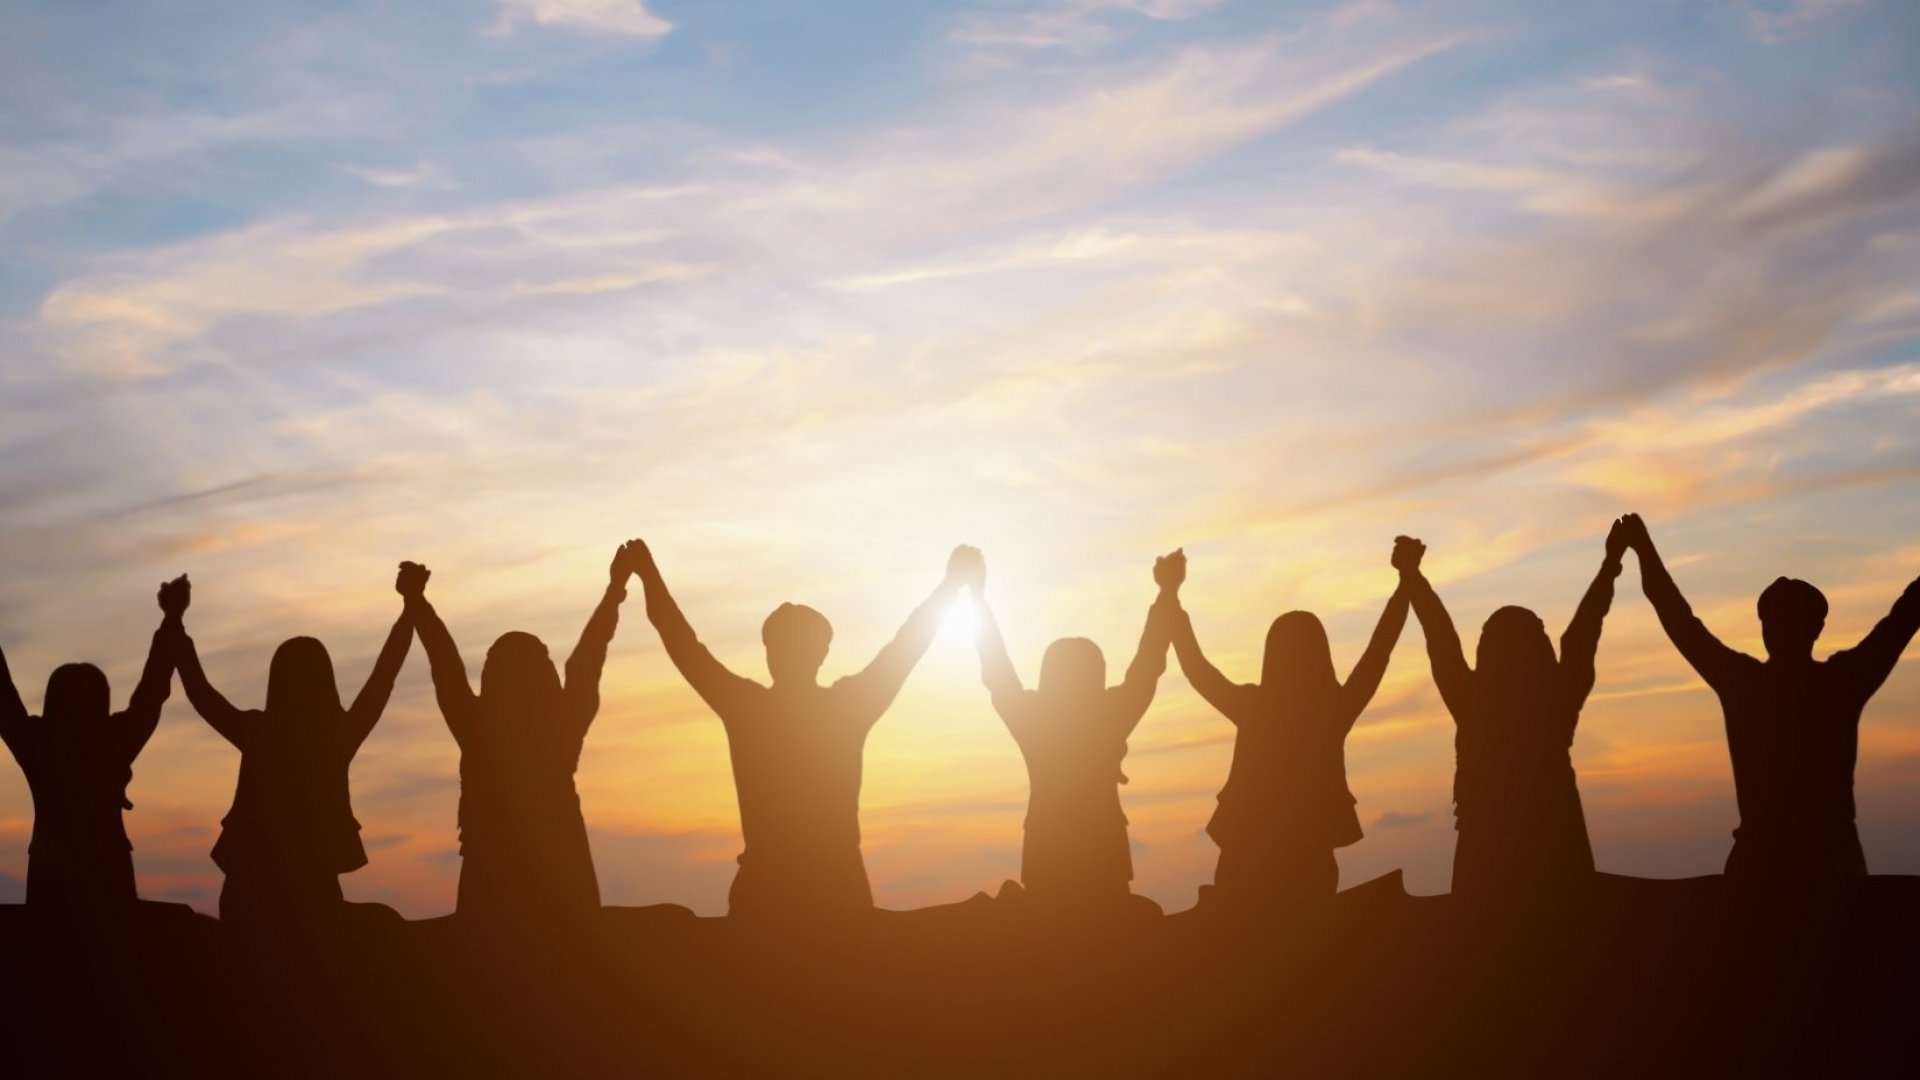 Team of people lifting hands together in front of a sunrise.